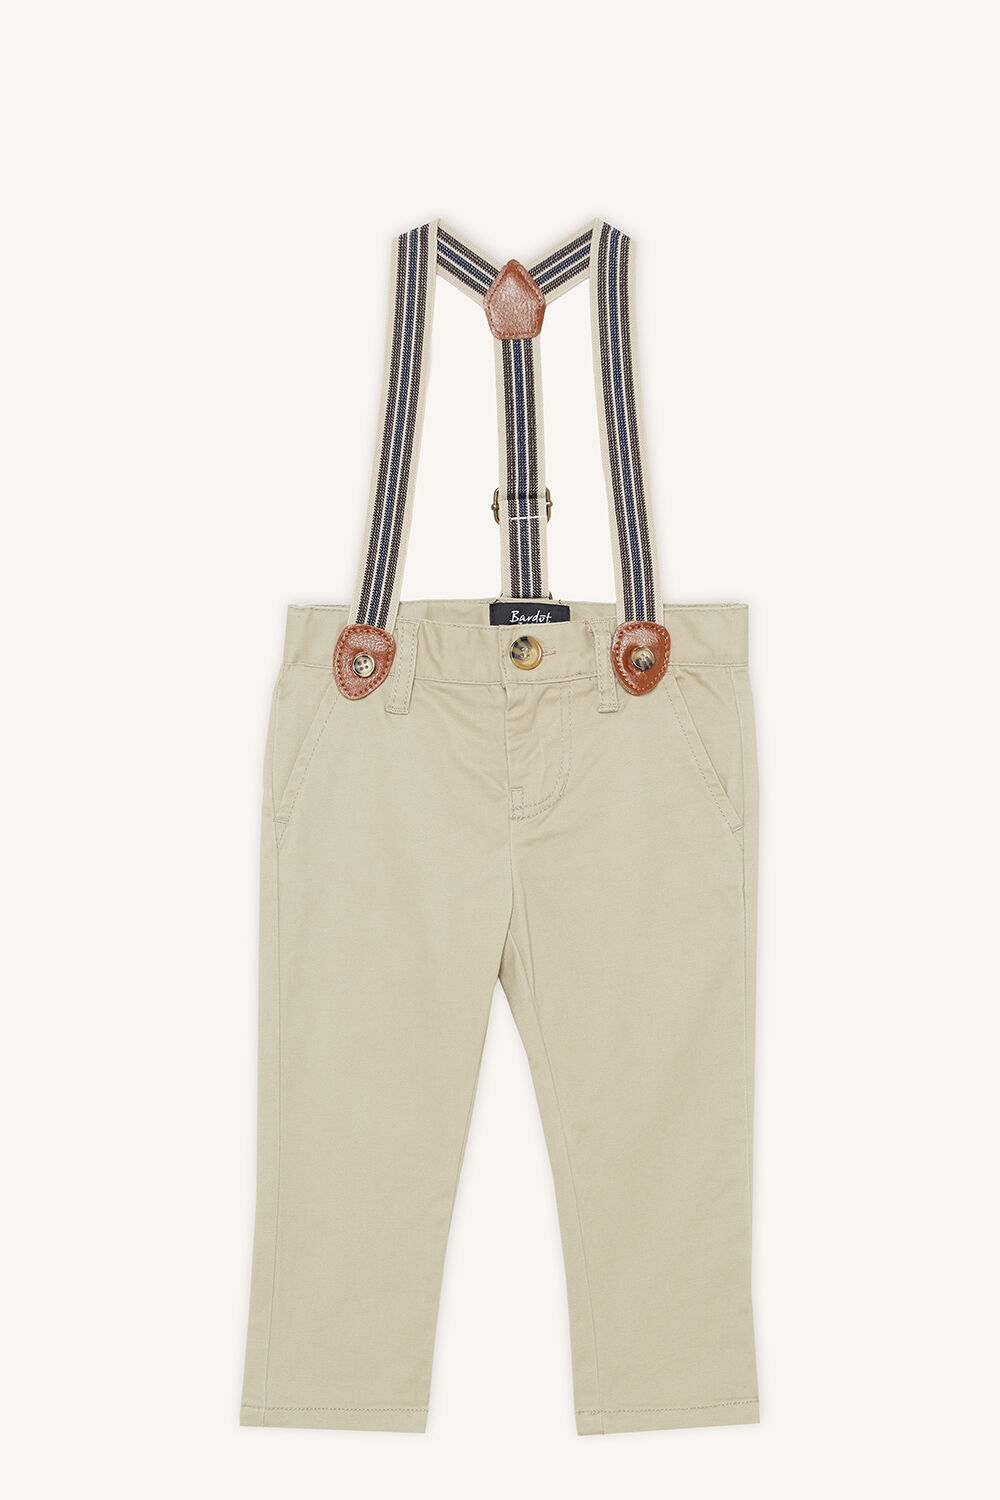 CHINO BRACES PANT in colour FOG